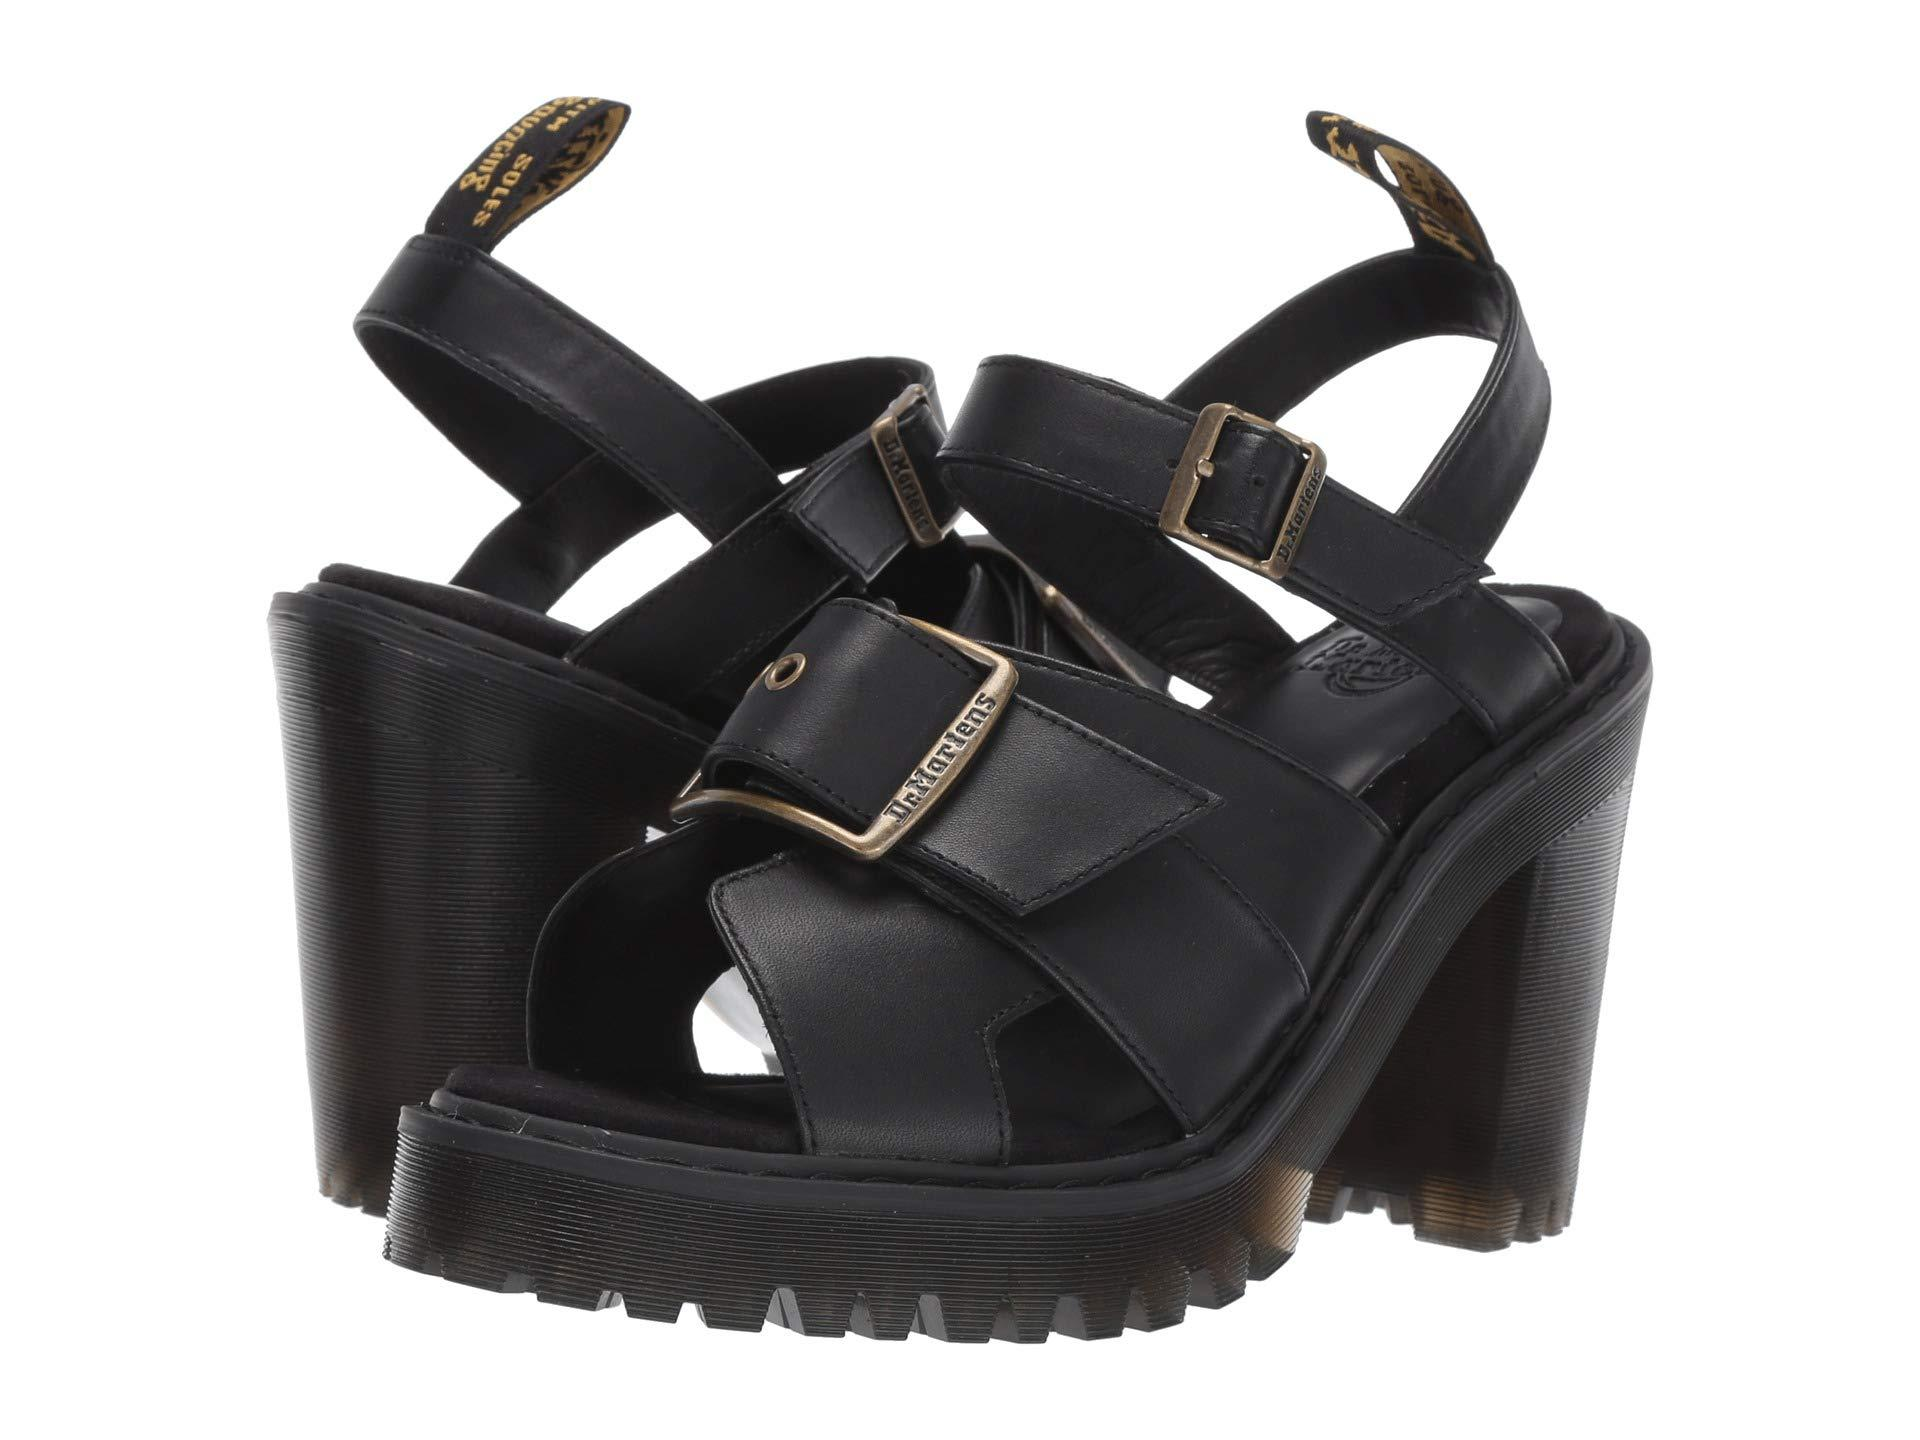 c02b7b0483dc Lyst - Dr. Martens Granik Sandal (black Smooth) Women s Sandals in Black